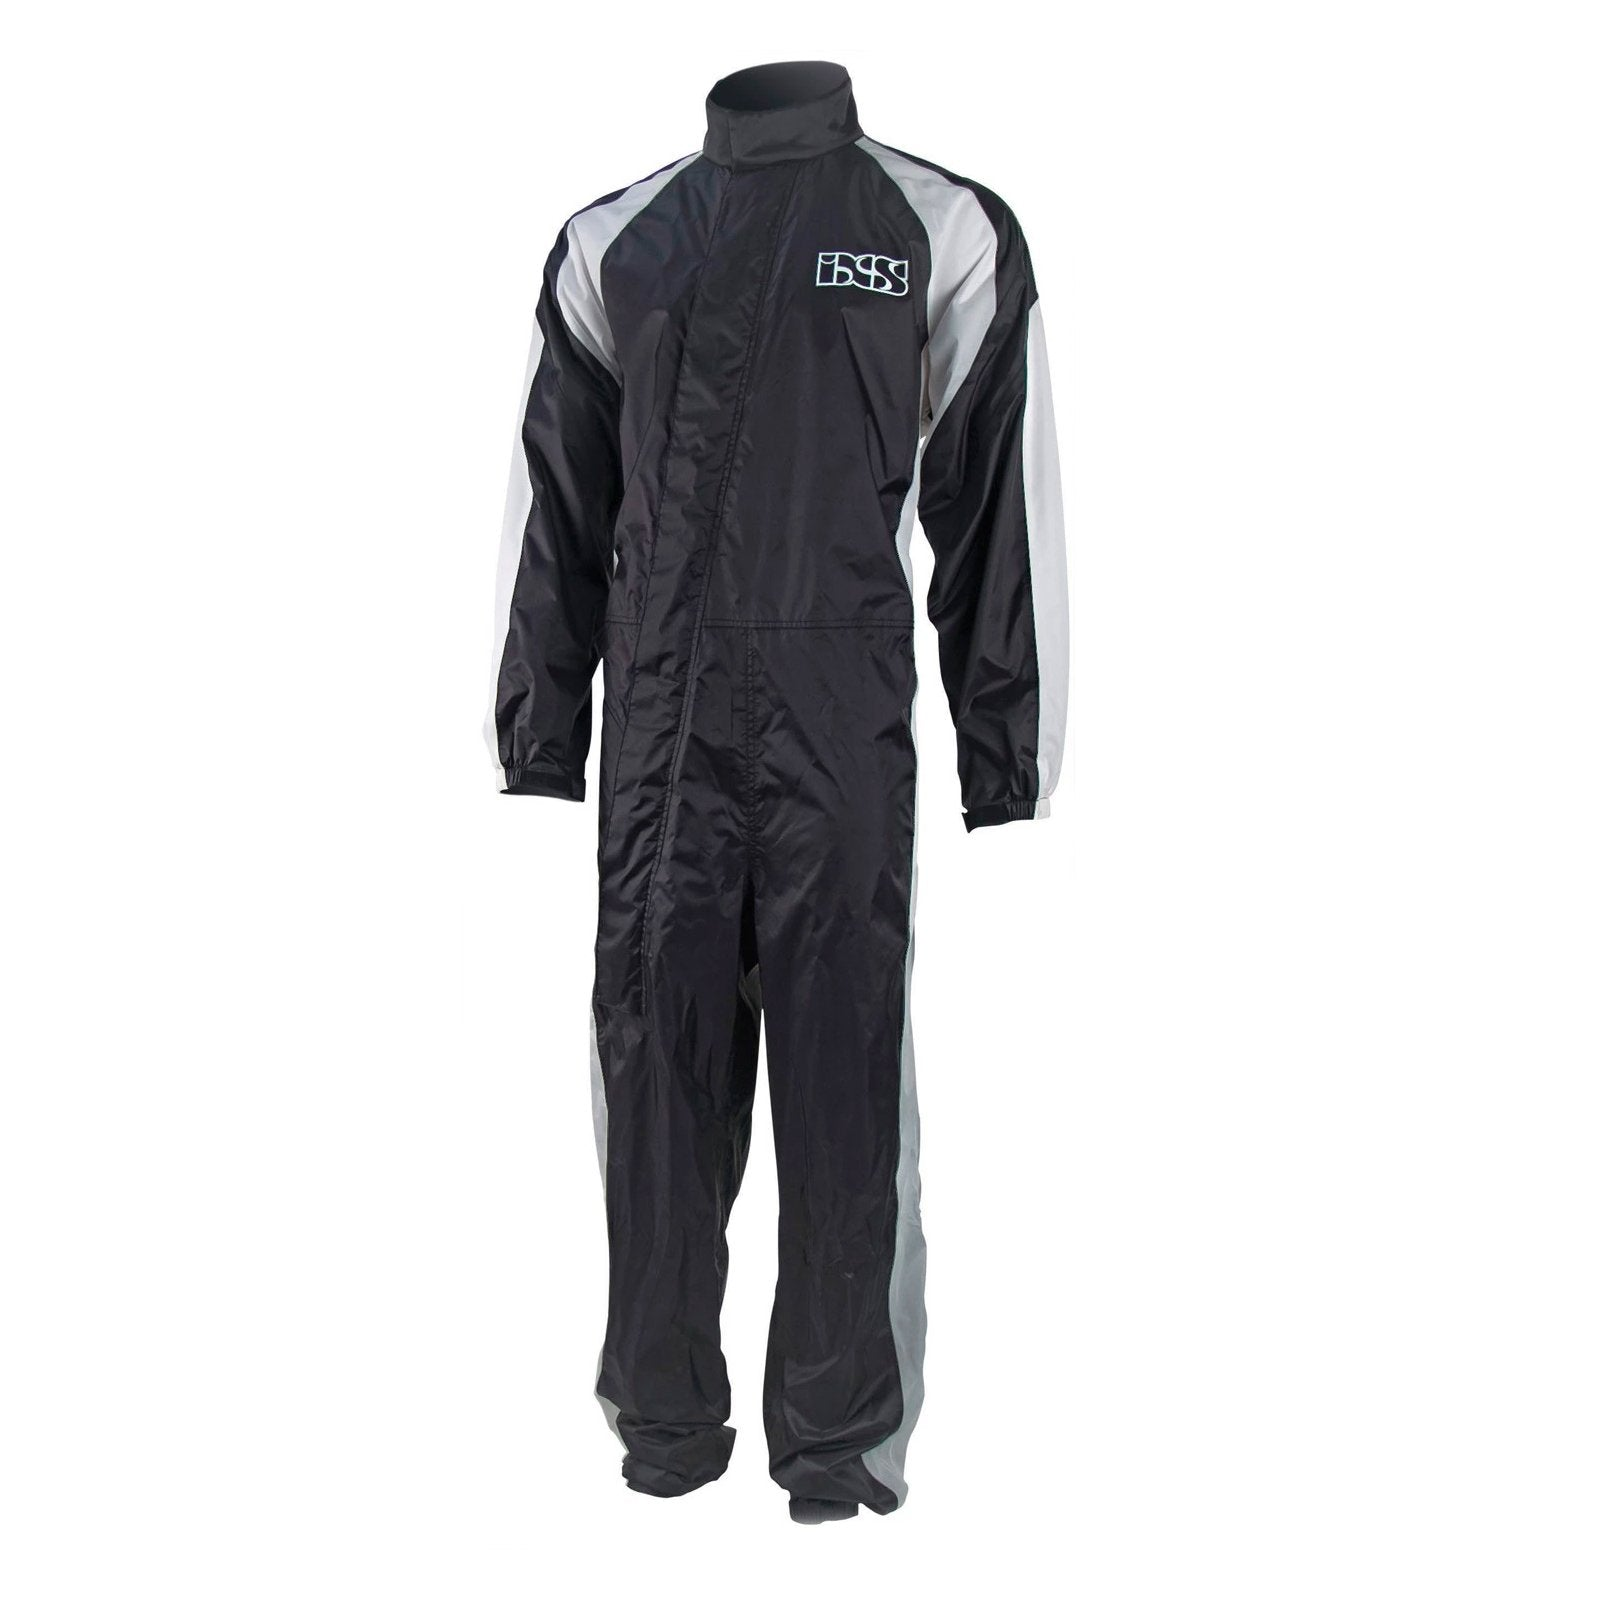 iXS Waterproof Overalls